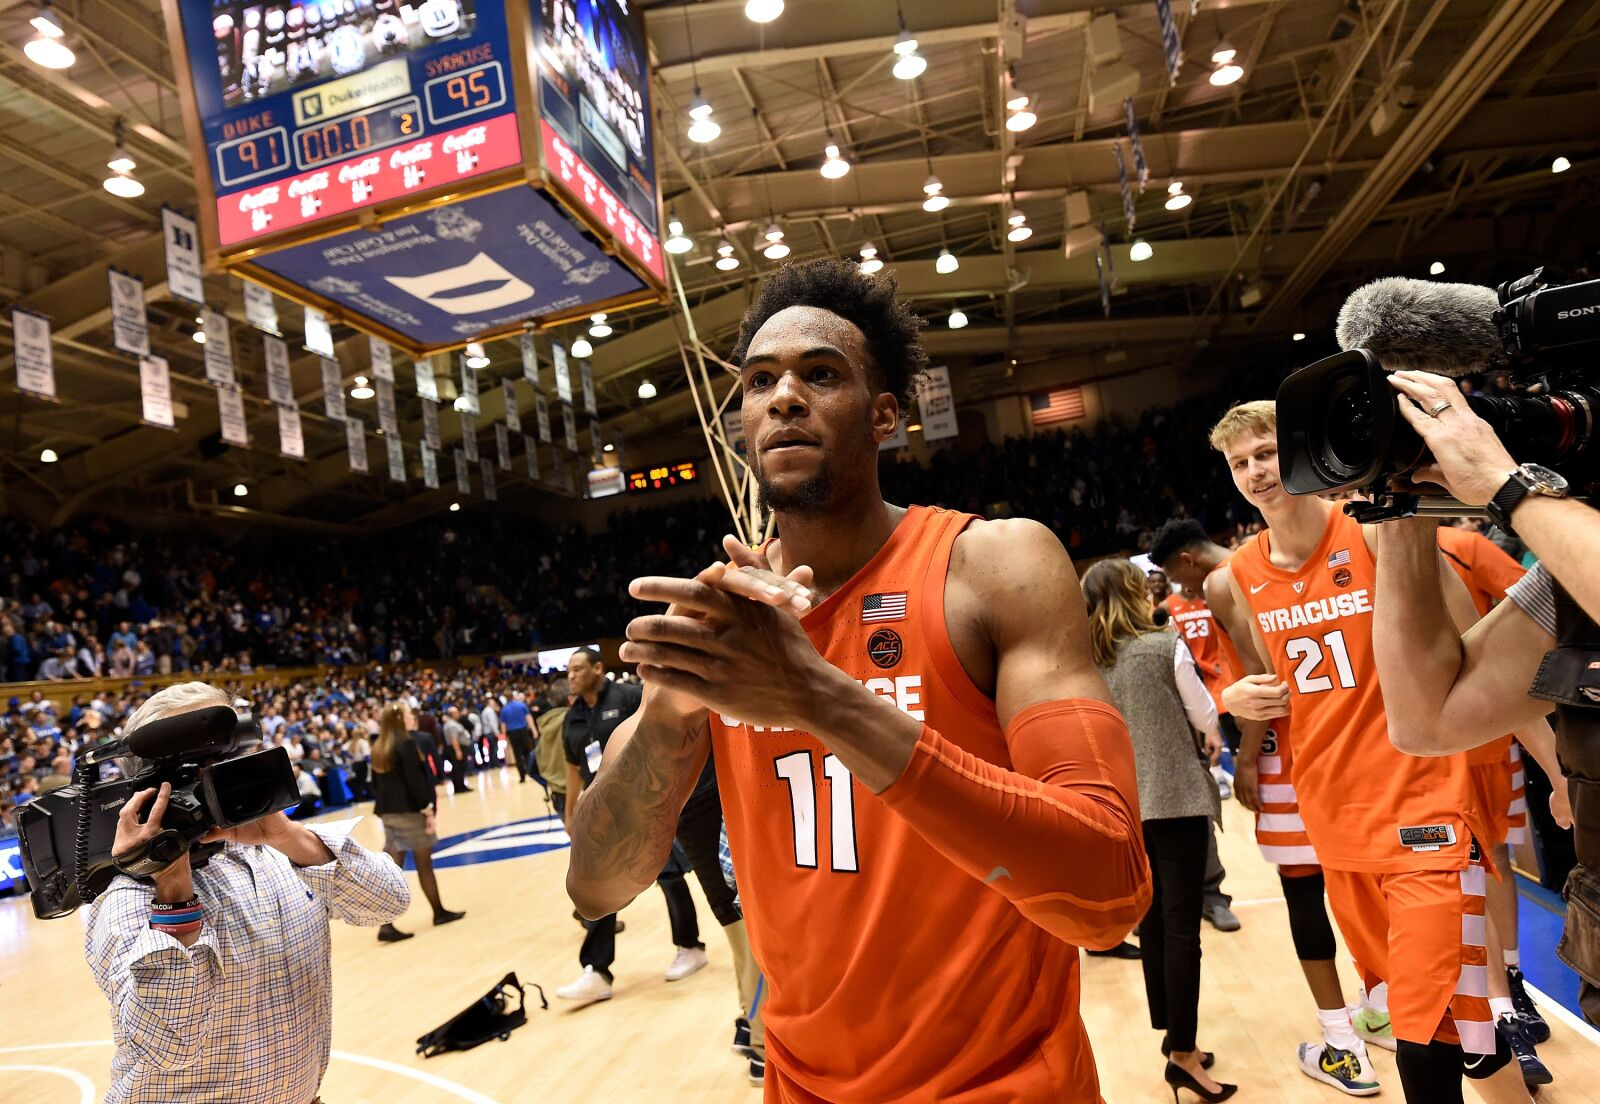 Syracuse Basketball: Predictions for ACC tilt vs Pittsburgh Panthers